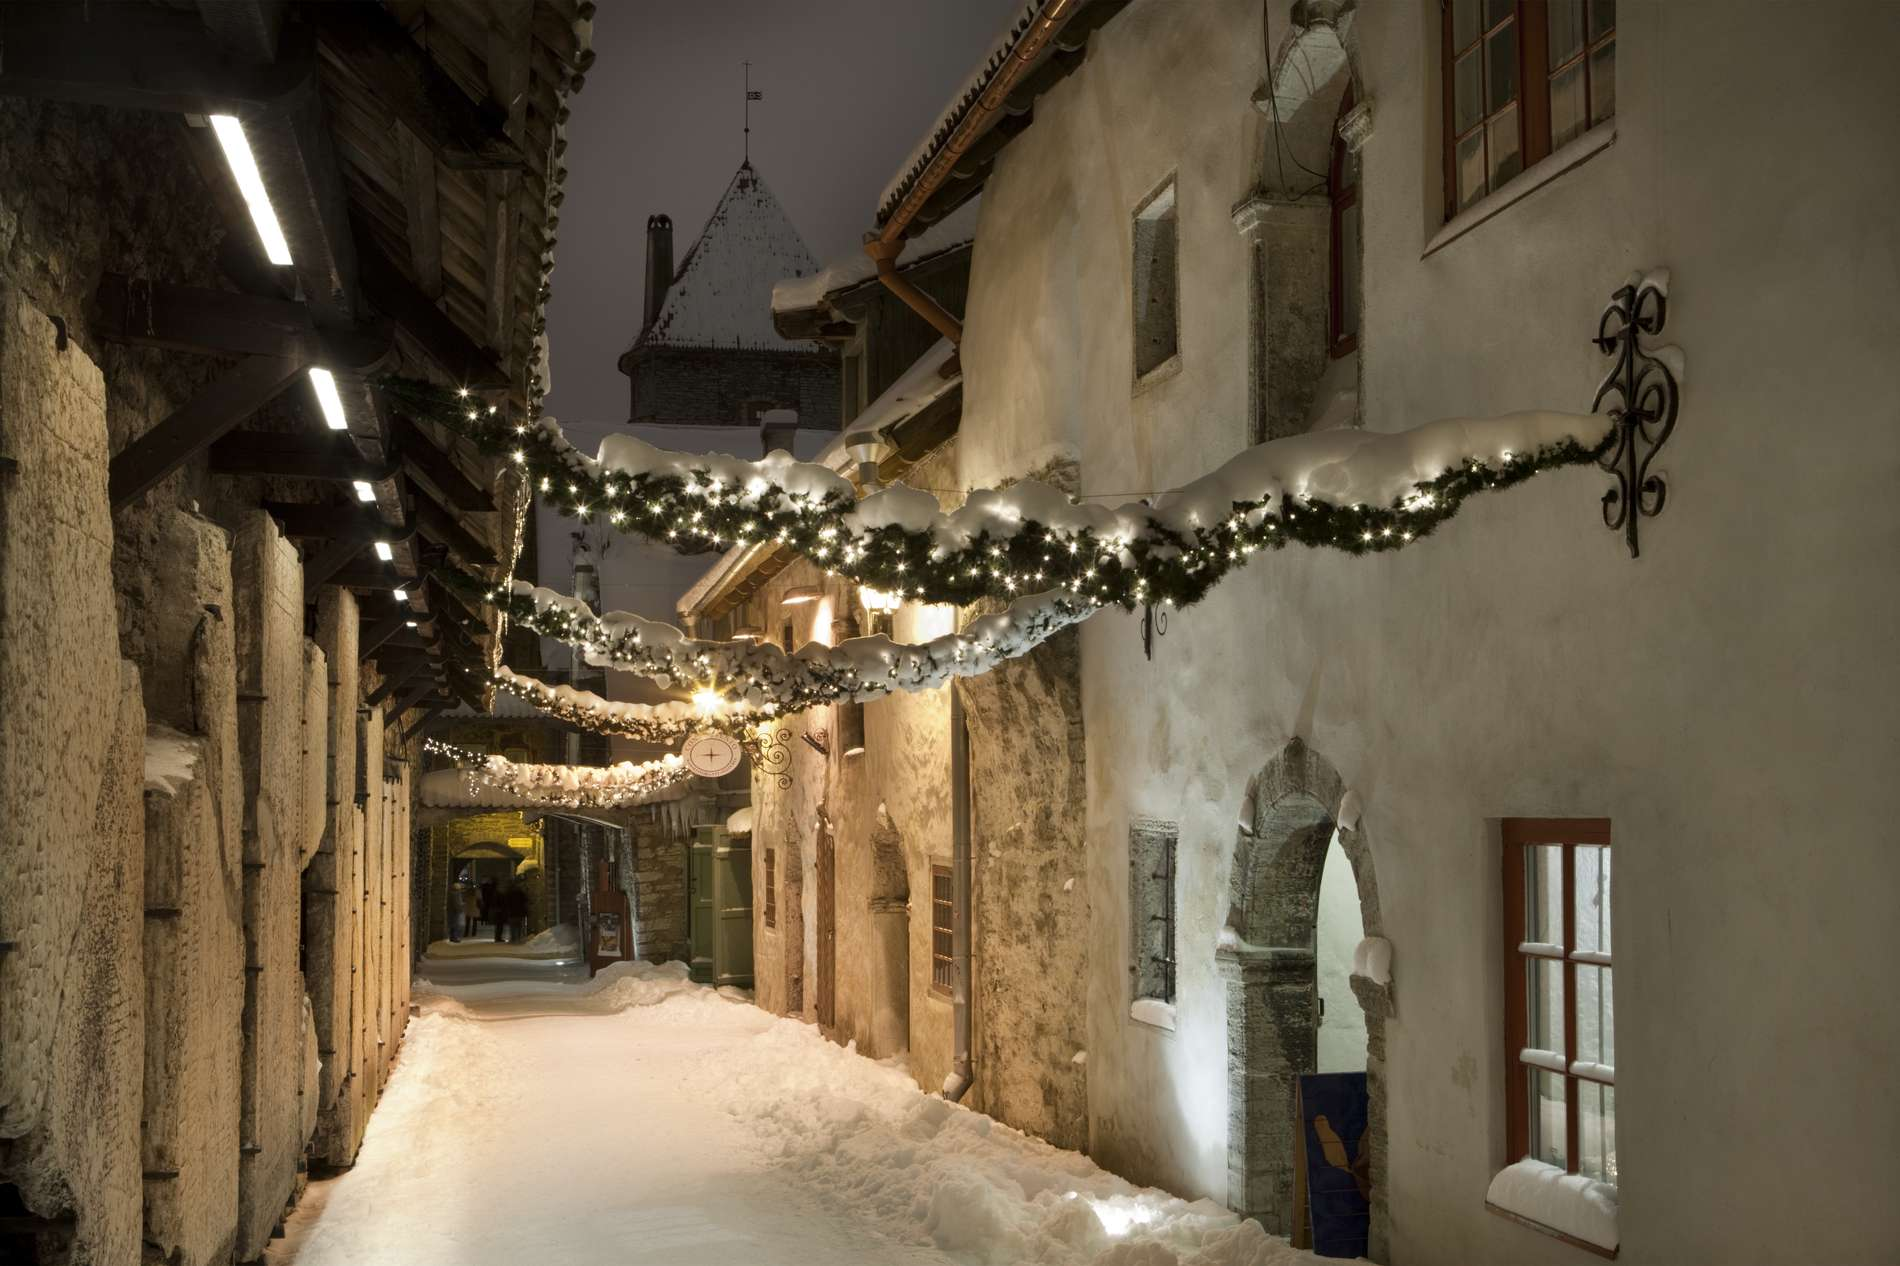 St. Catherine's Passage (Katariina käik) in the Old Town of Tallinn, Estonia in winter.